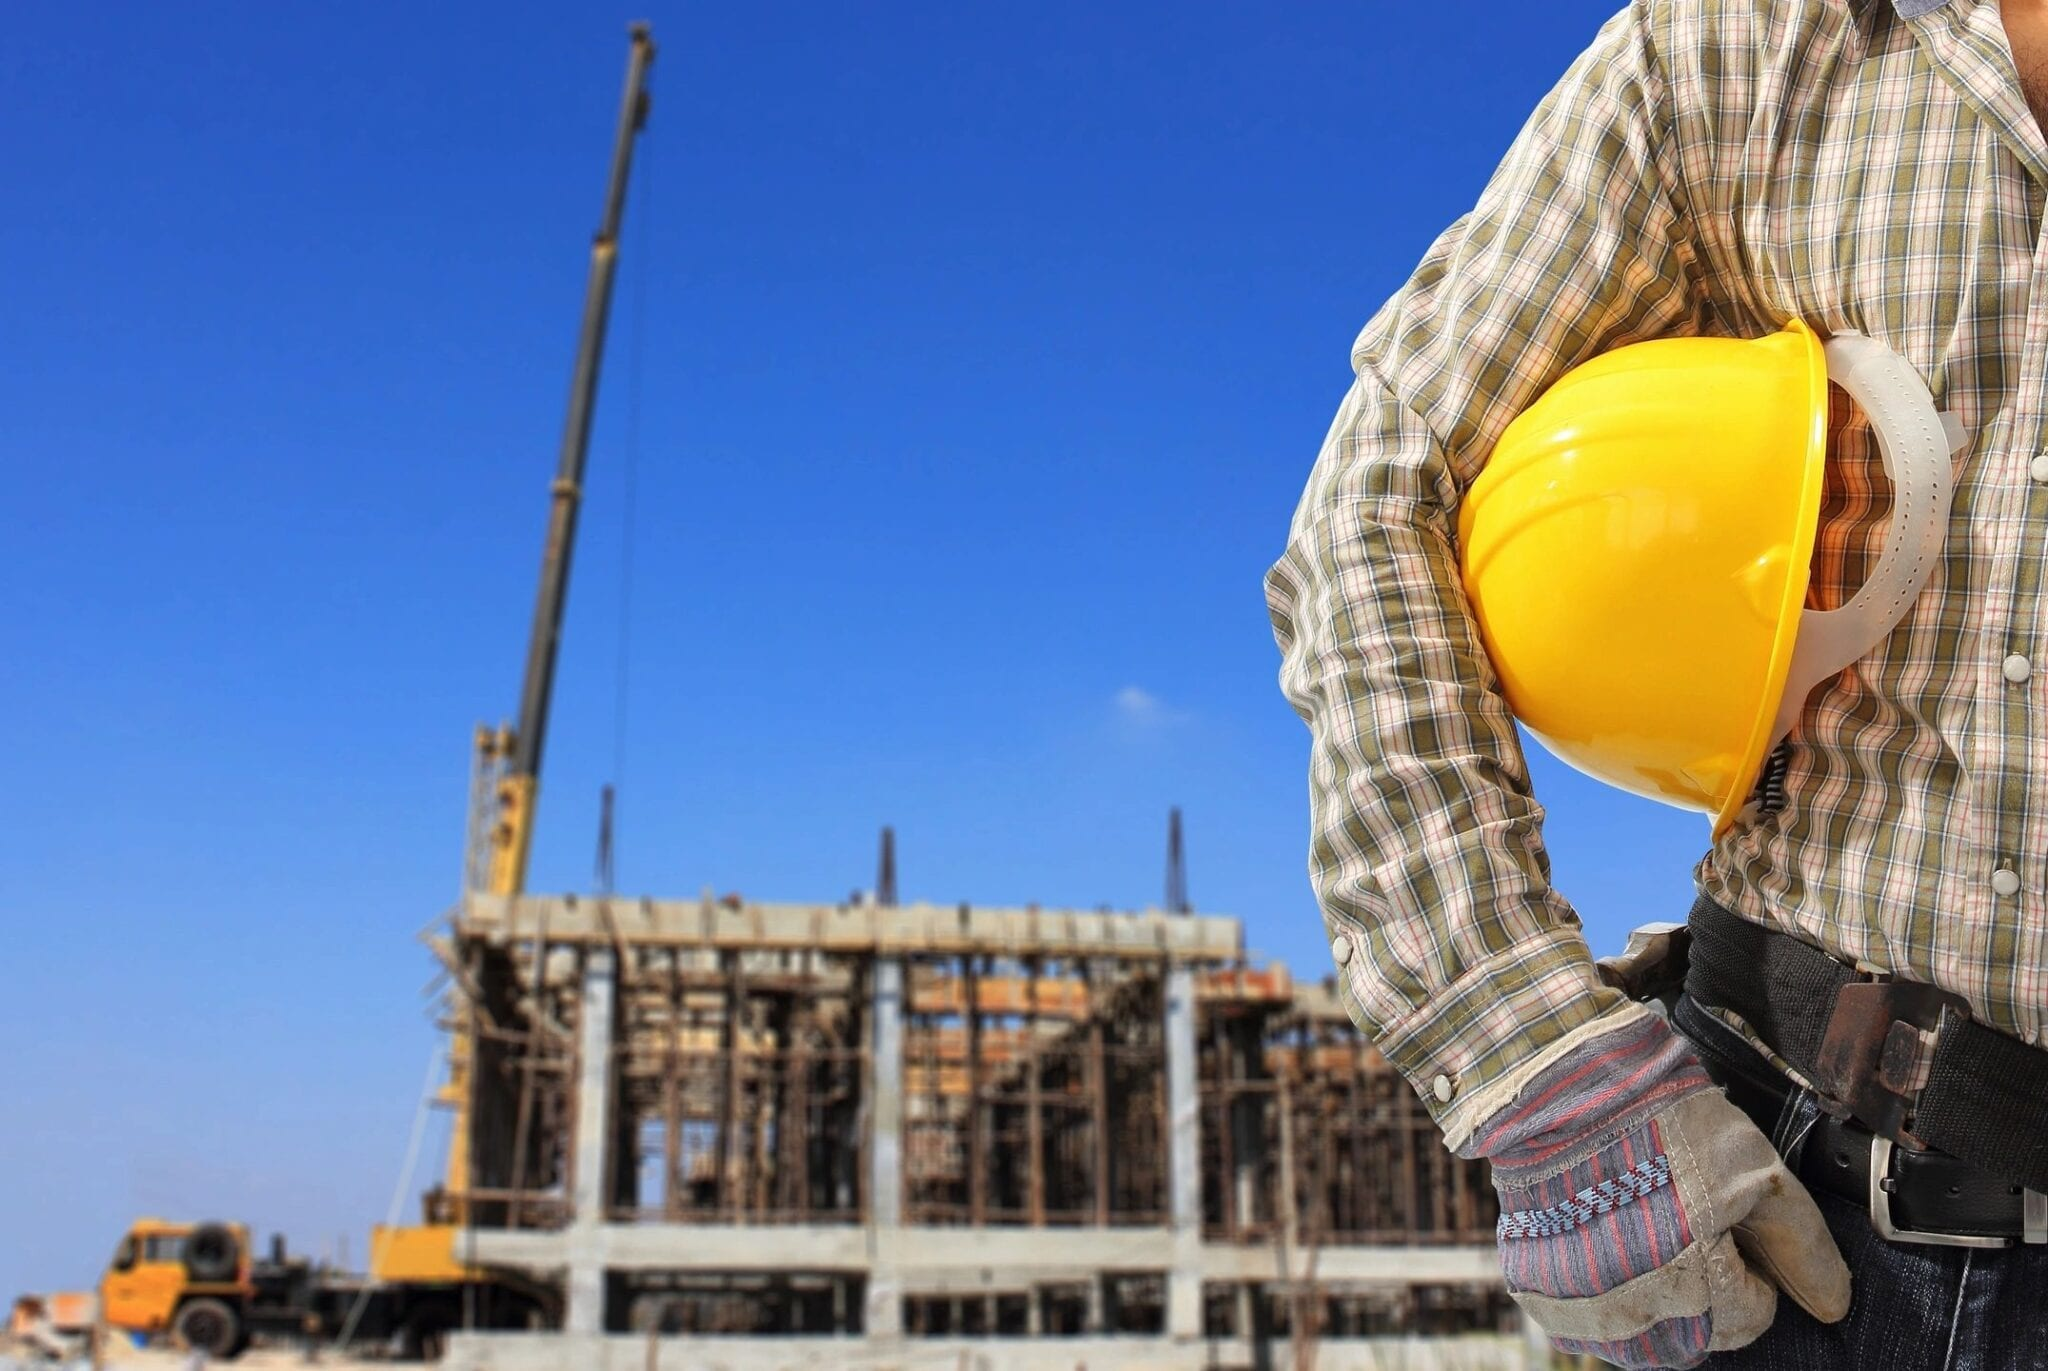 Qatar: New laws to protect migrant workers are a step in the right direction